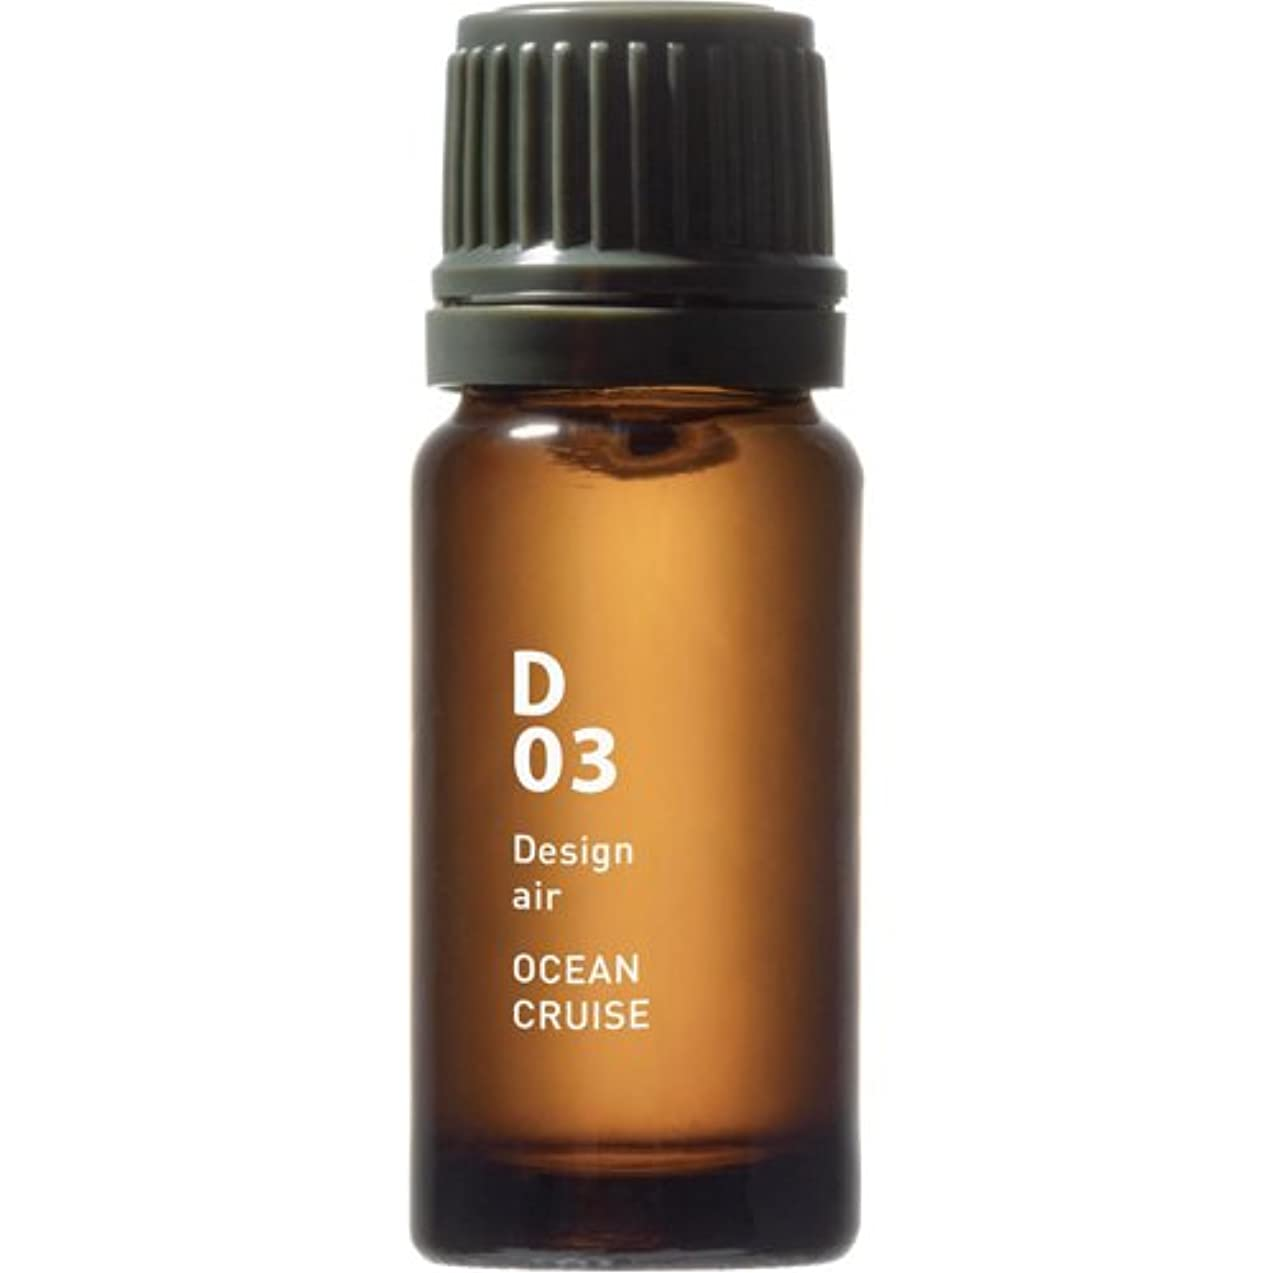 利点入浴航空D03 OCEAN CRUISE Design air 10ml